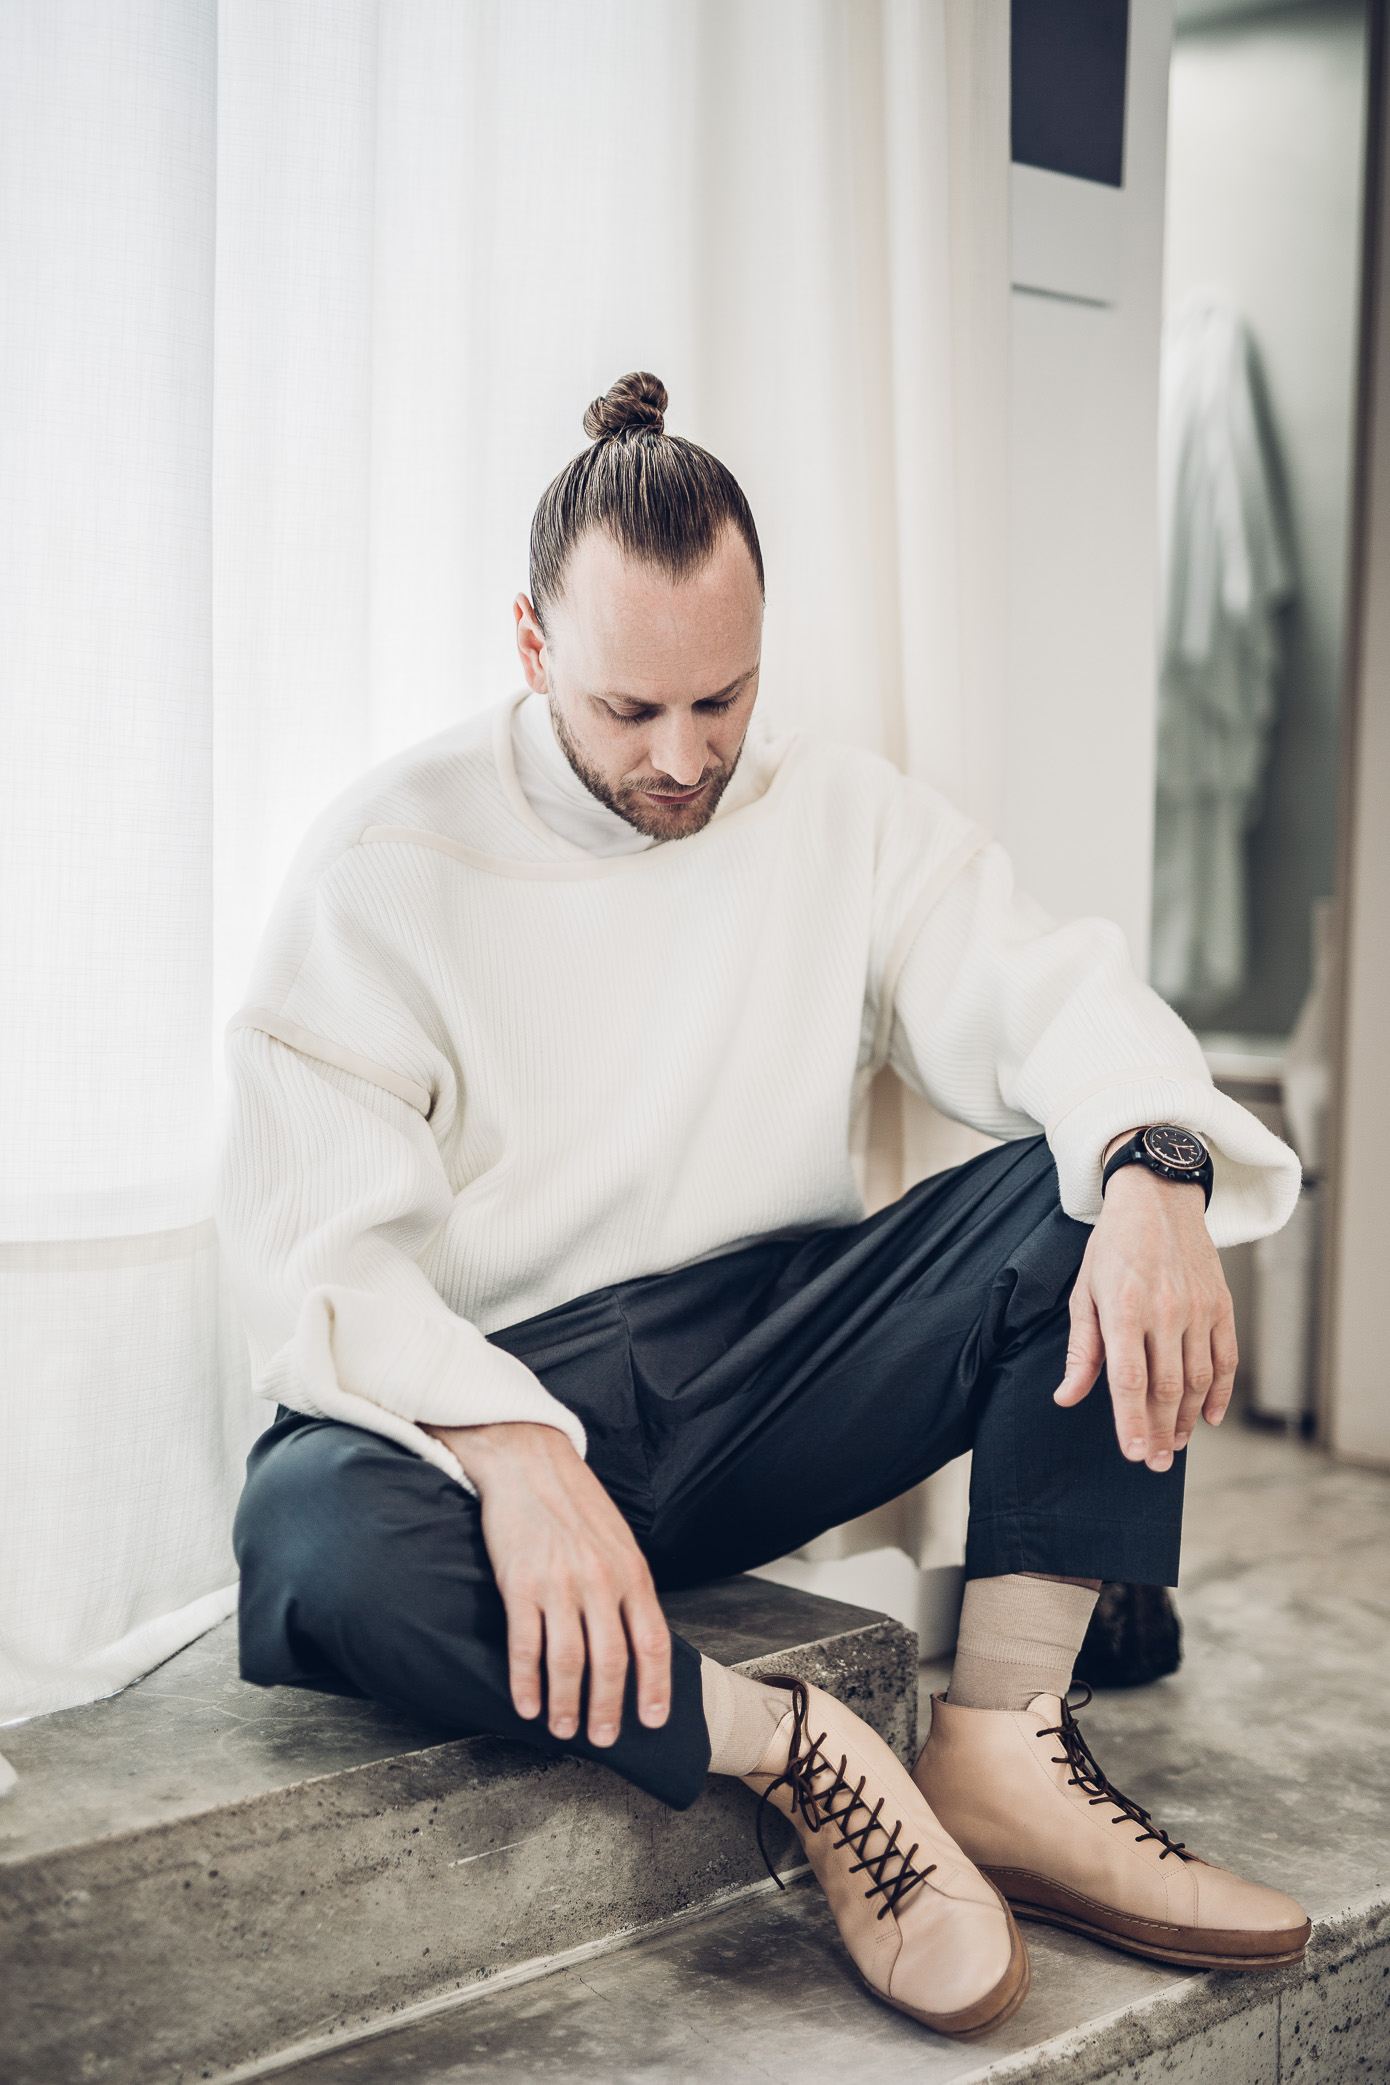 Von Morgen, Handrafted, leather shoes, Marni, chadwick bell